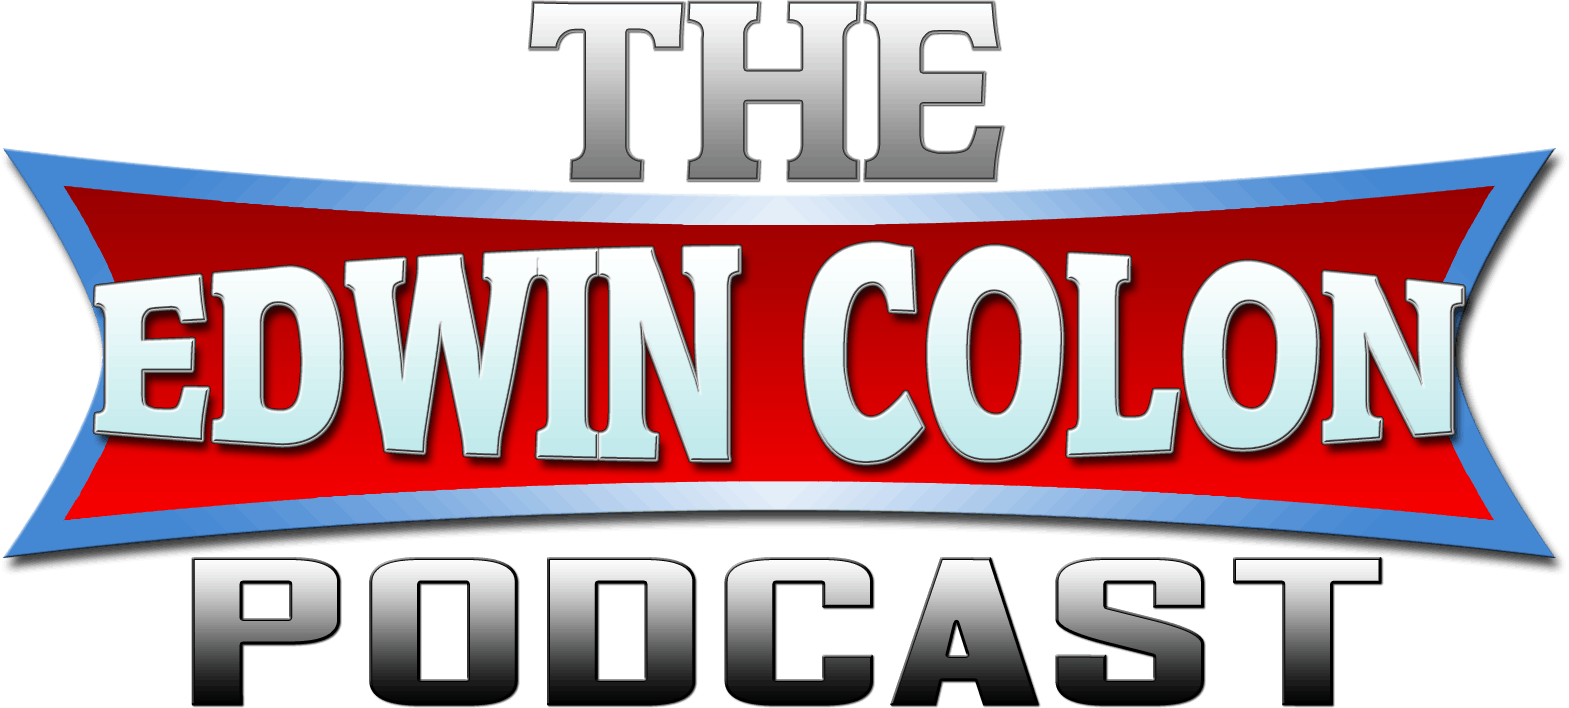 The Edwin Colon Podcast